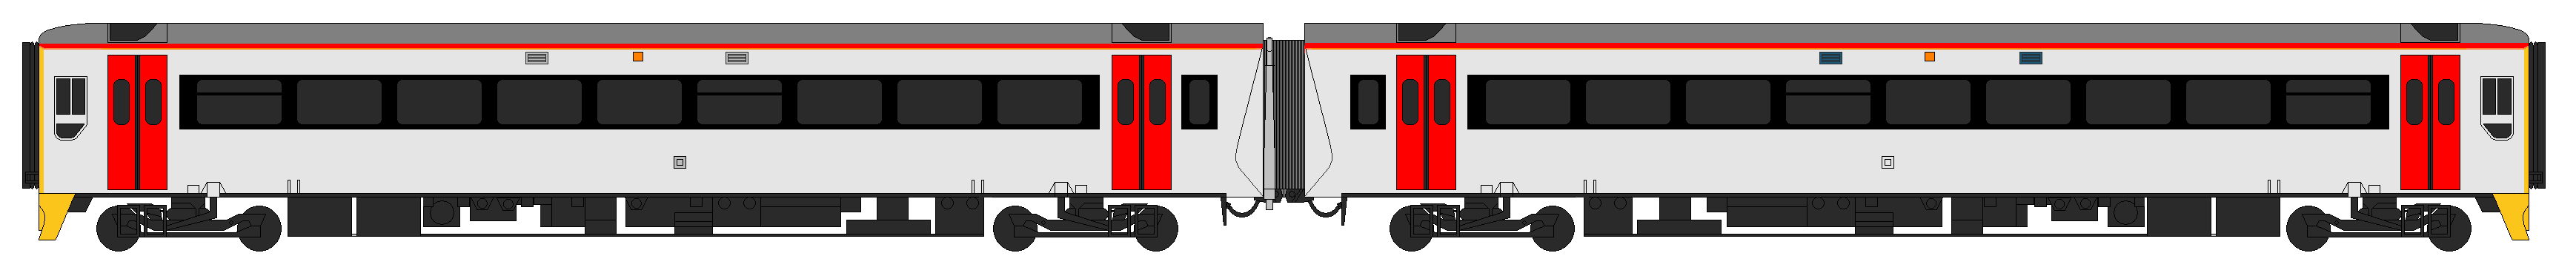 Class 158 in the Transport for Wales livery